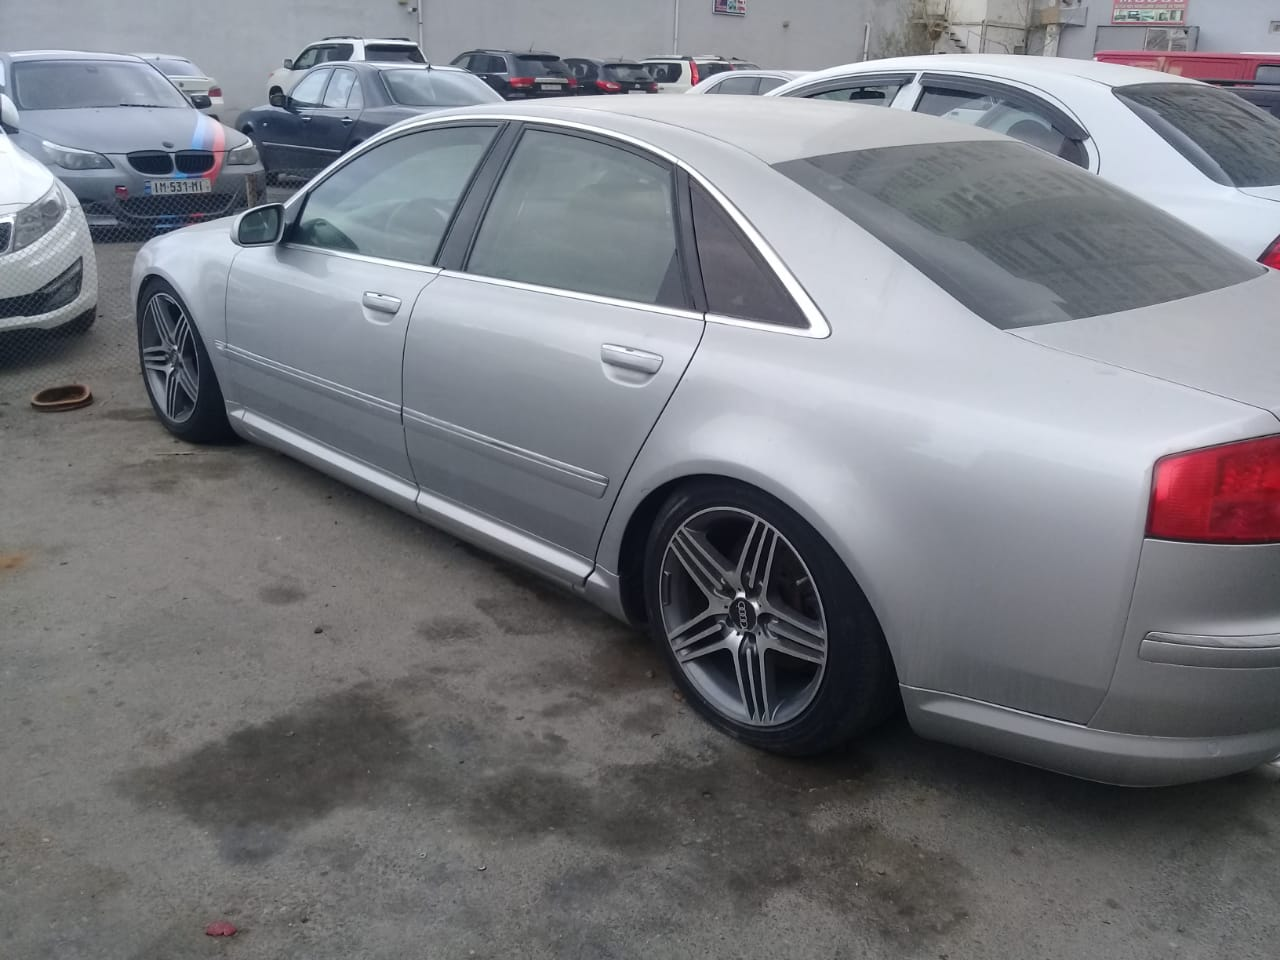 Audi A8 3.7(lt) 2004 Second hand  $2650